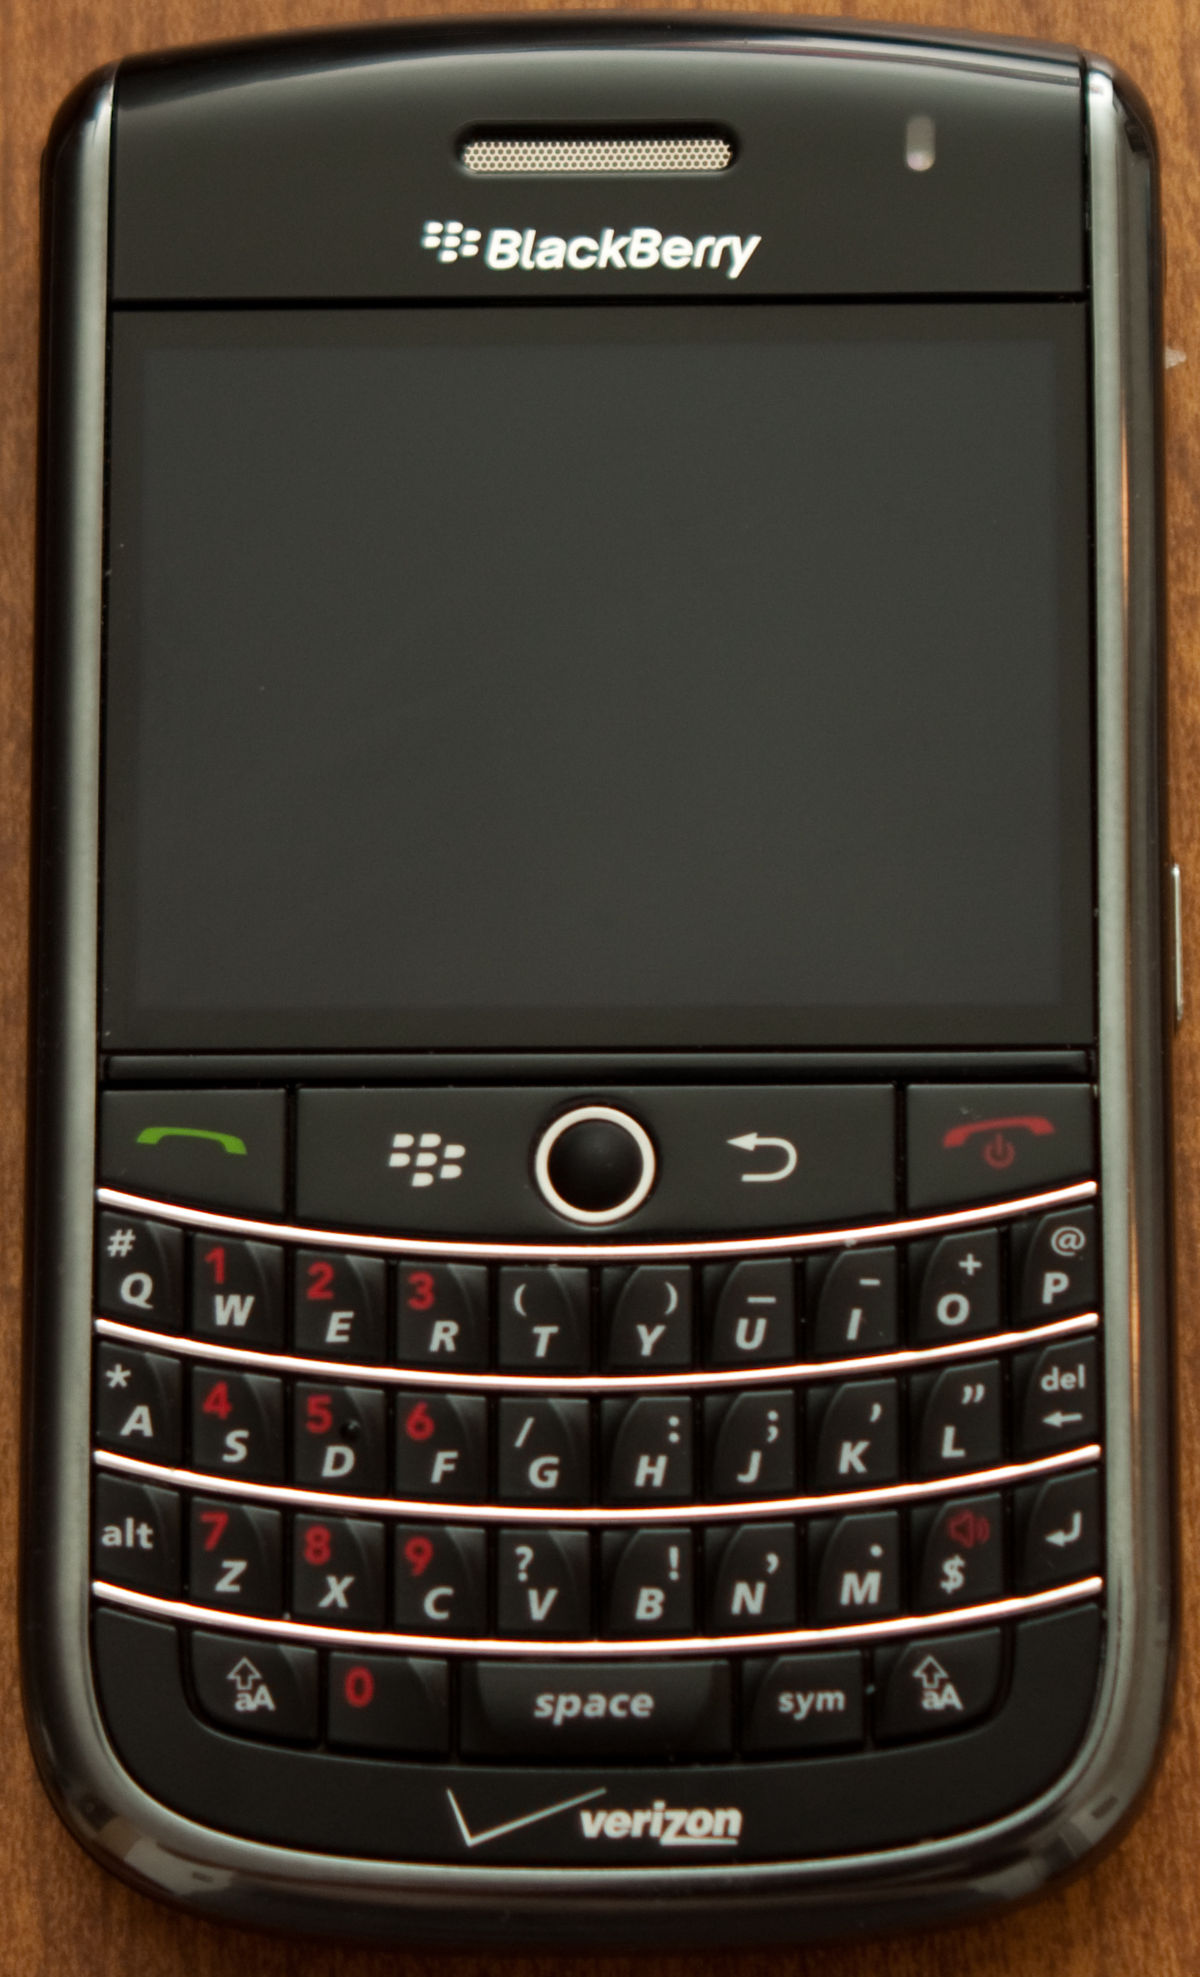 BlackBerry Tour - Wikipedia